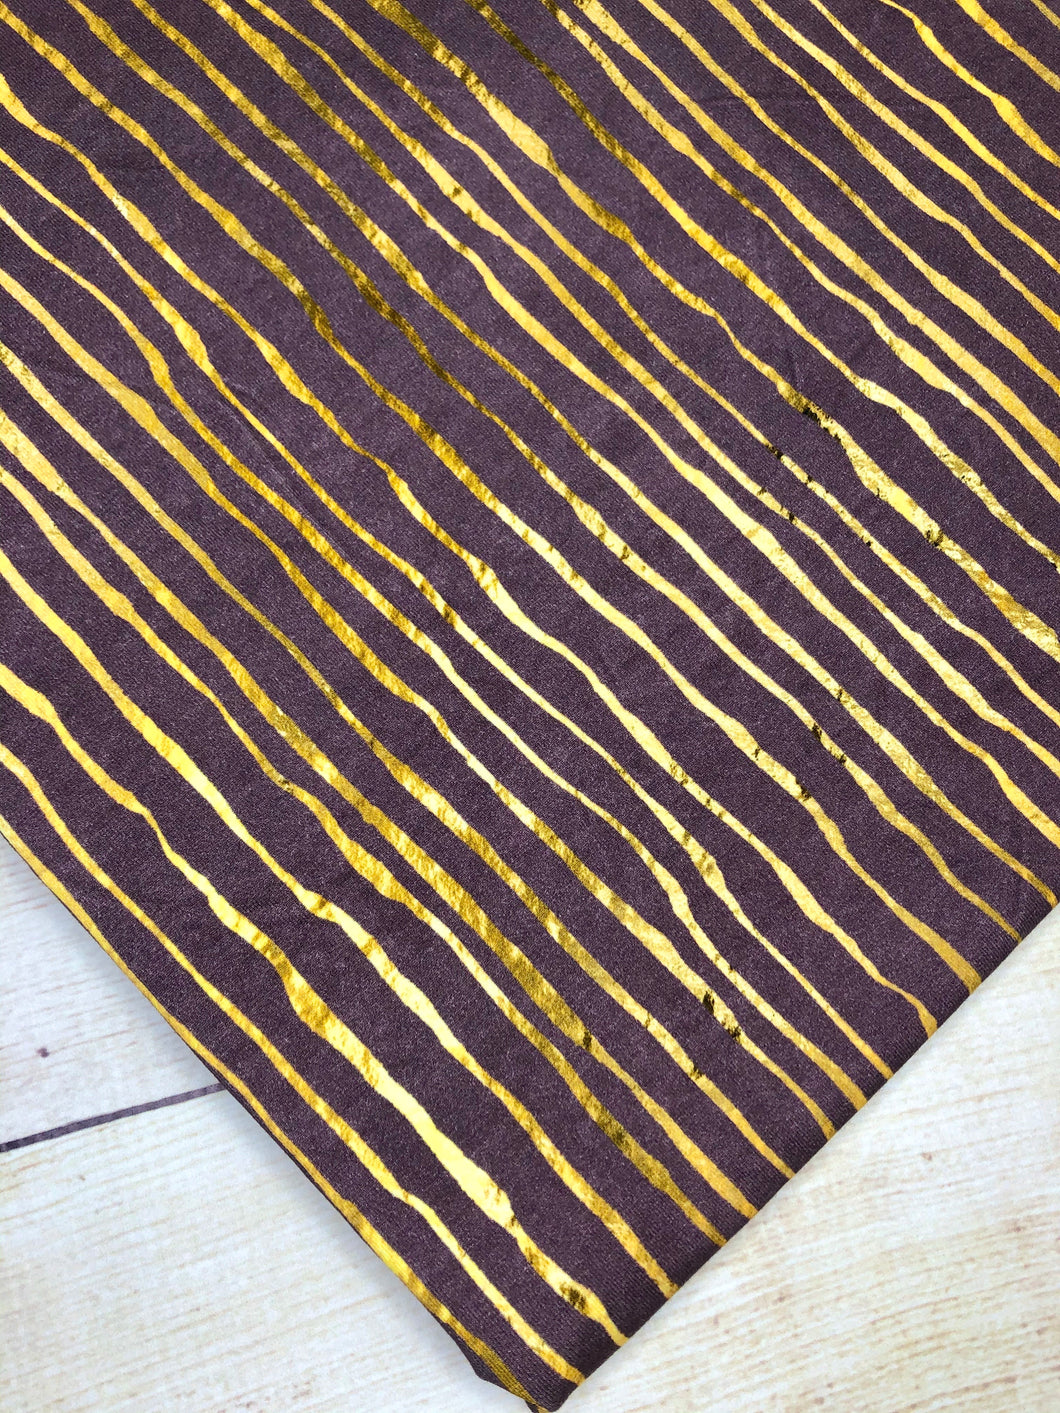 Purple and Gold Stripes Cotton Spandex